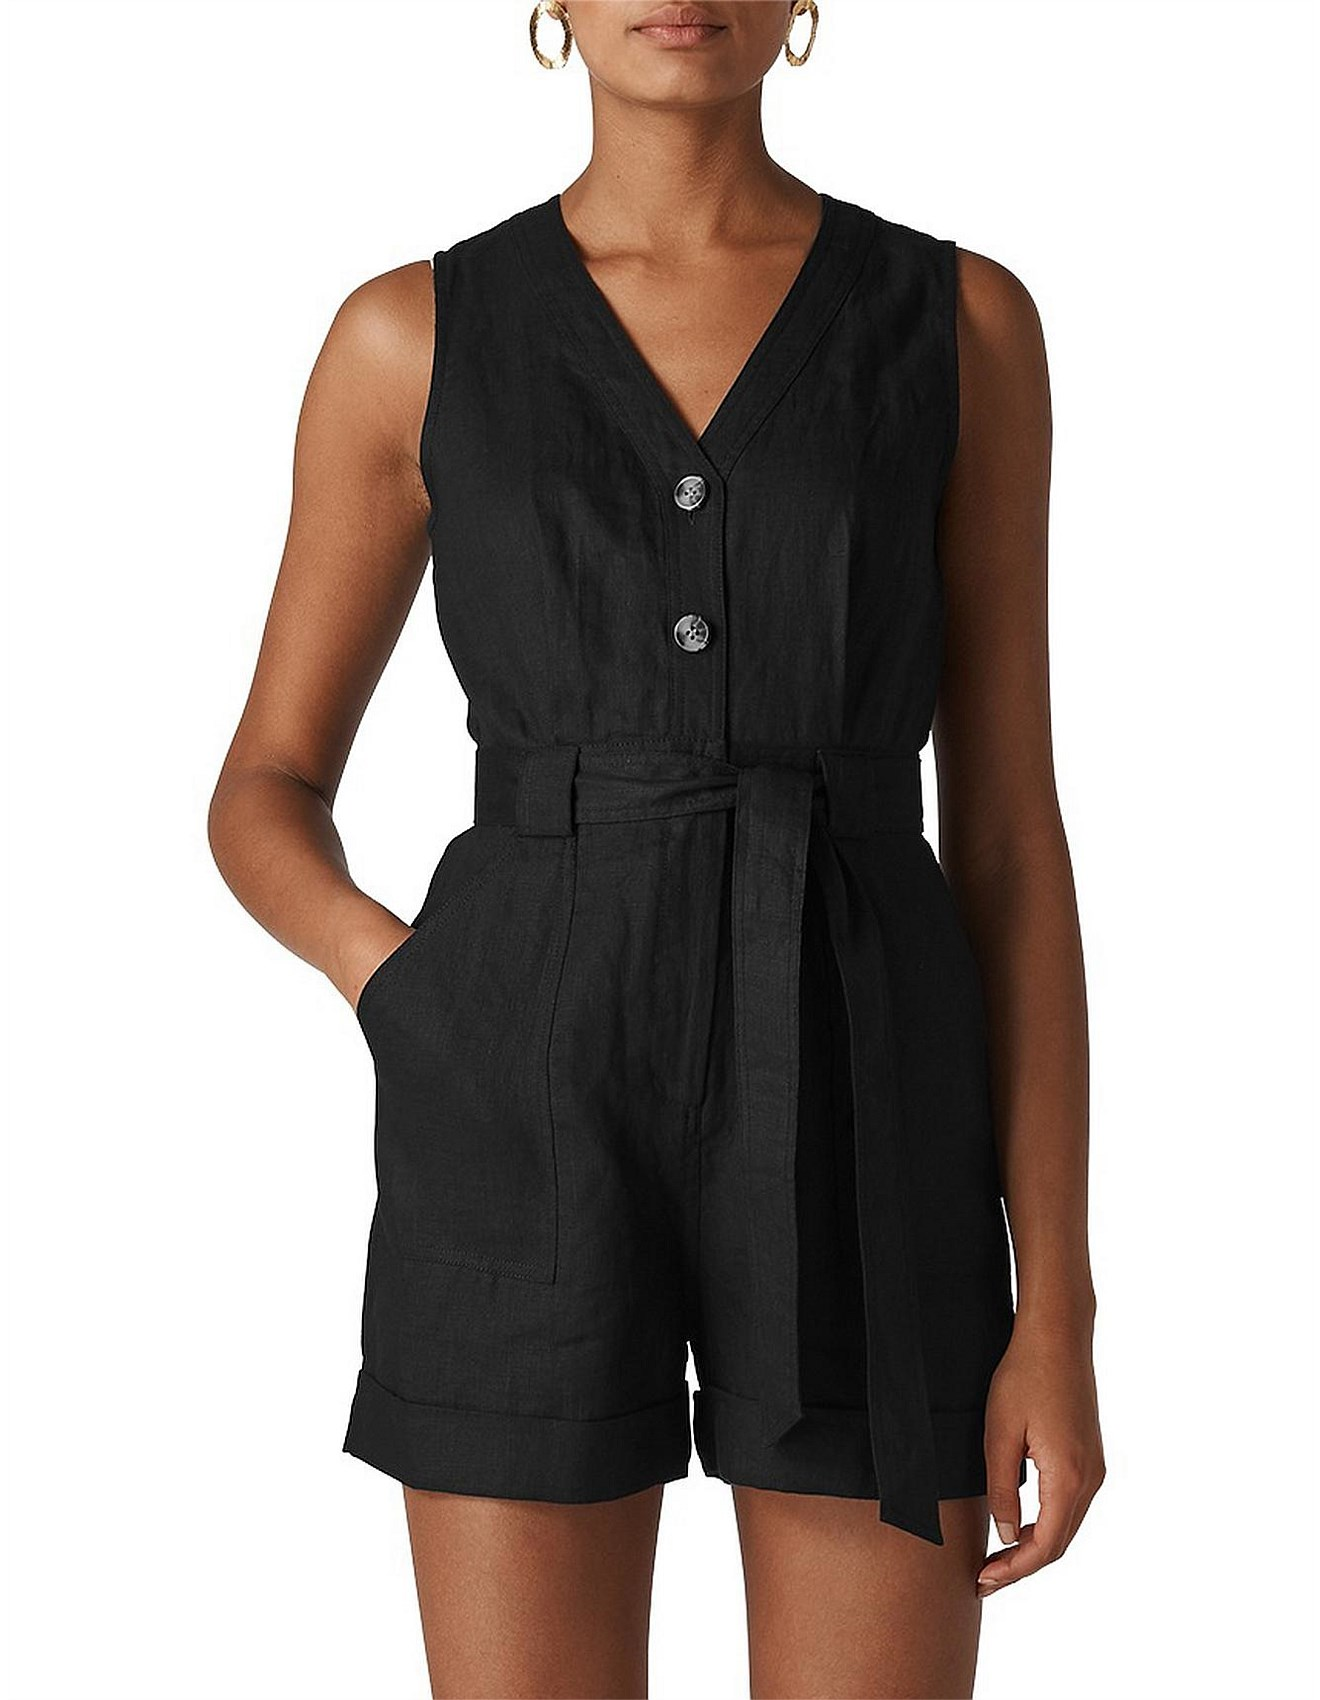 great discount for up-to-datestyling clearance prices LINEN BUTTON PLAYSUIT